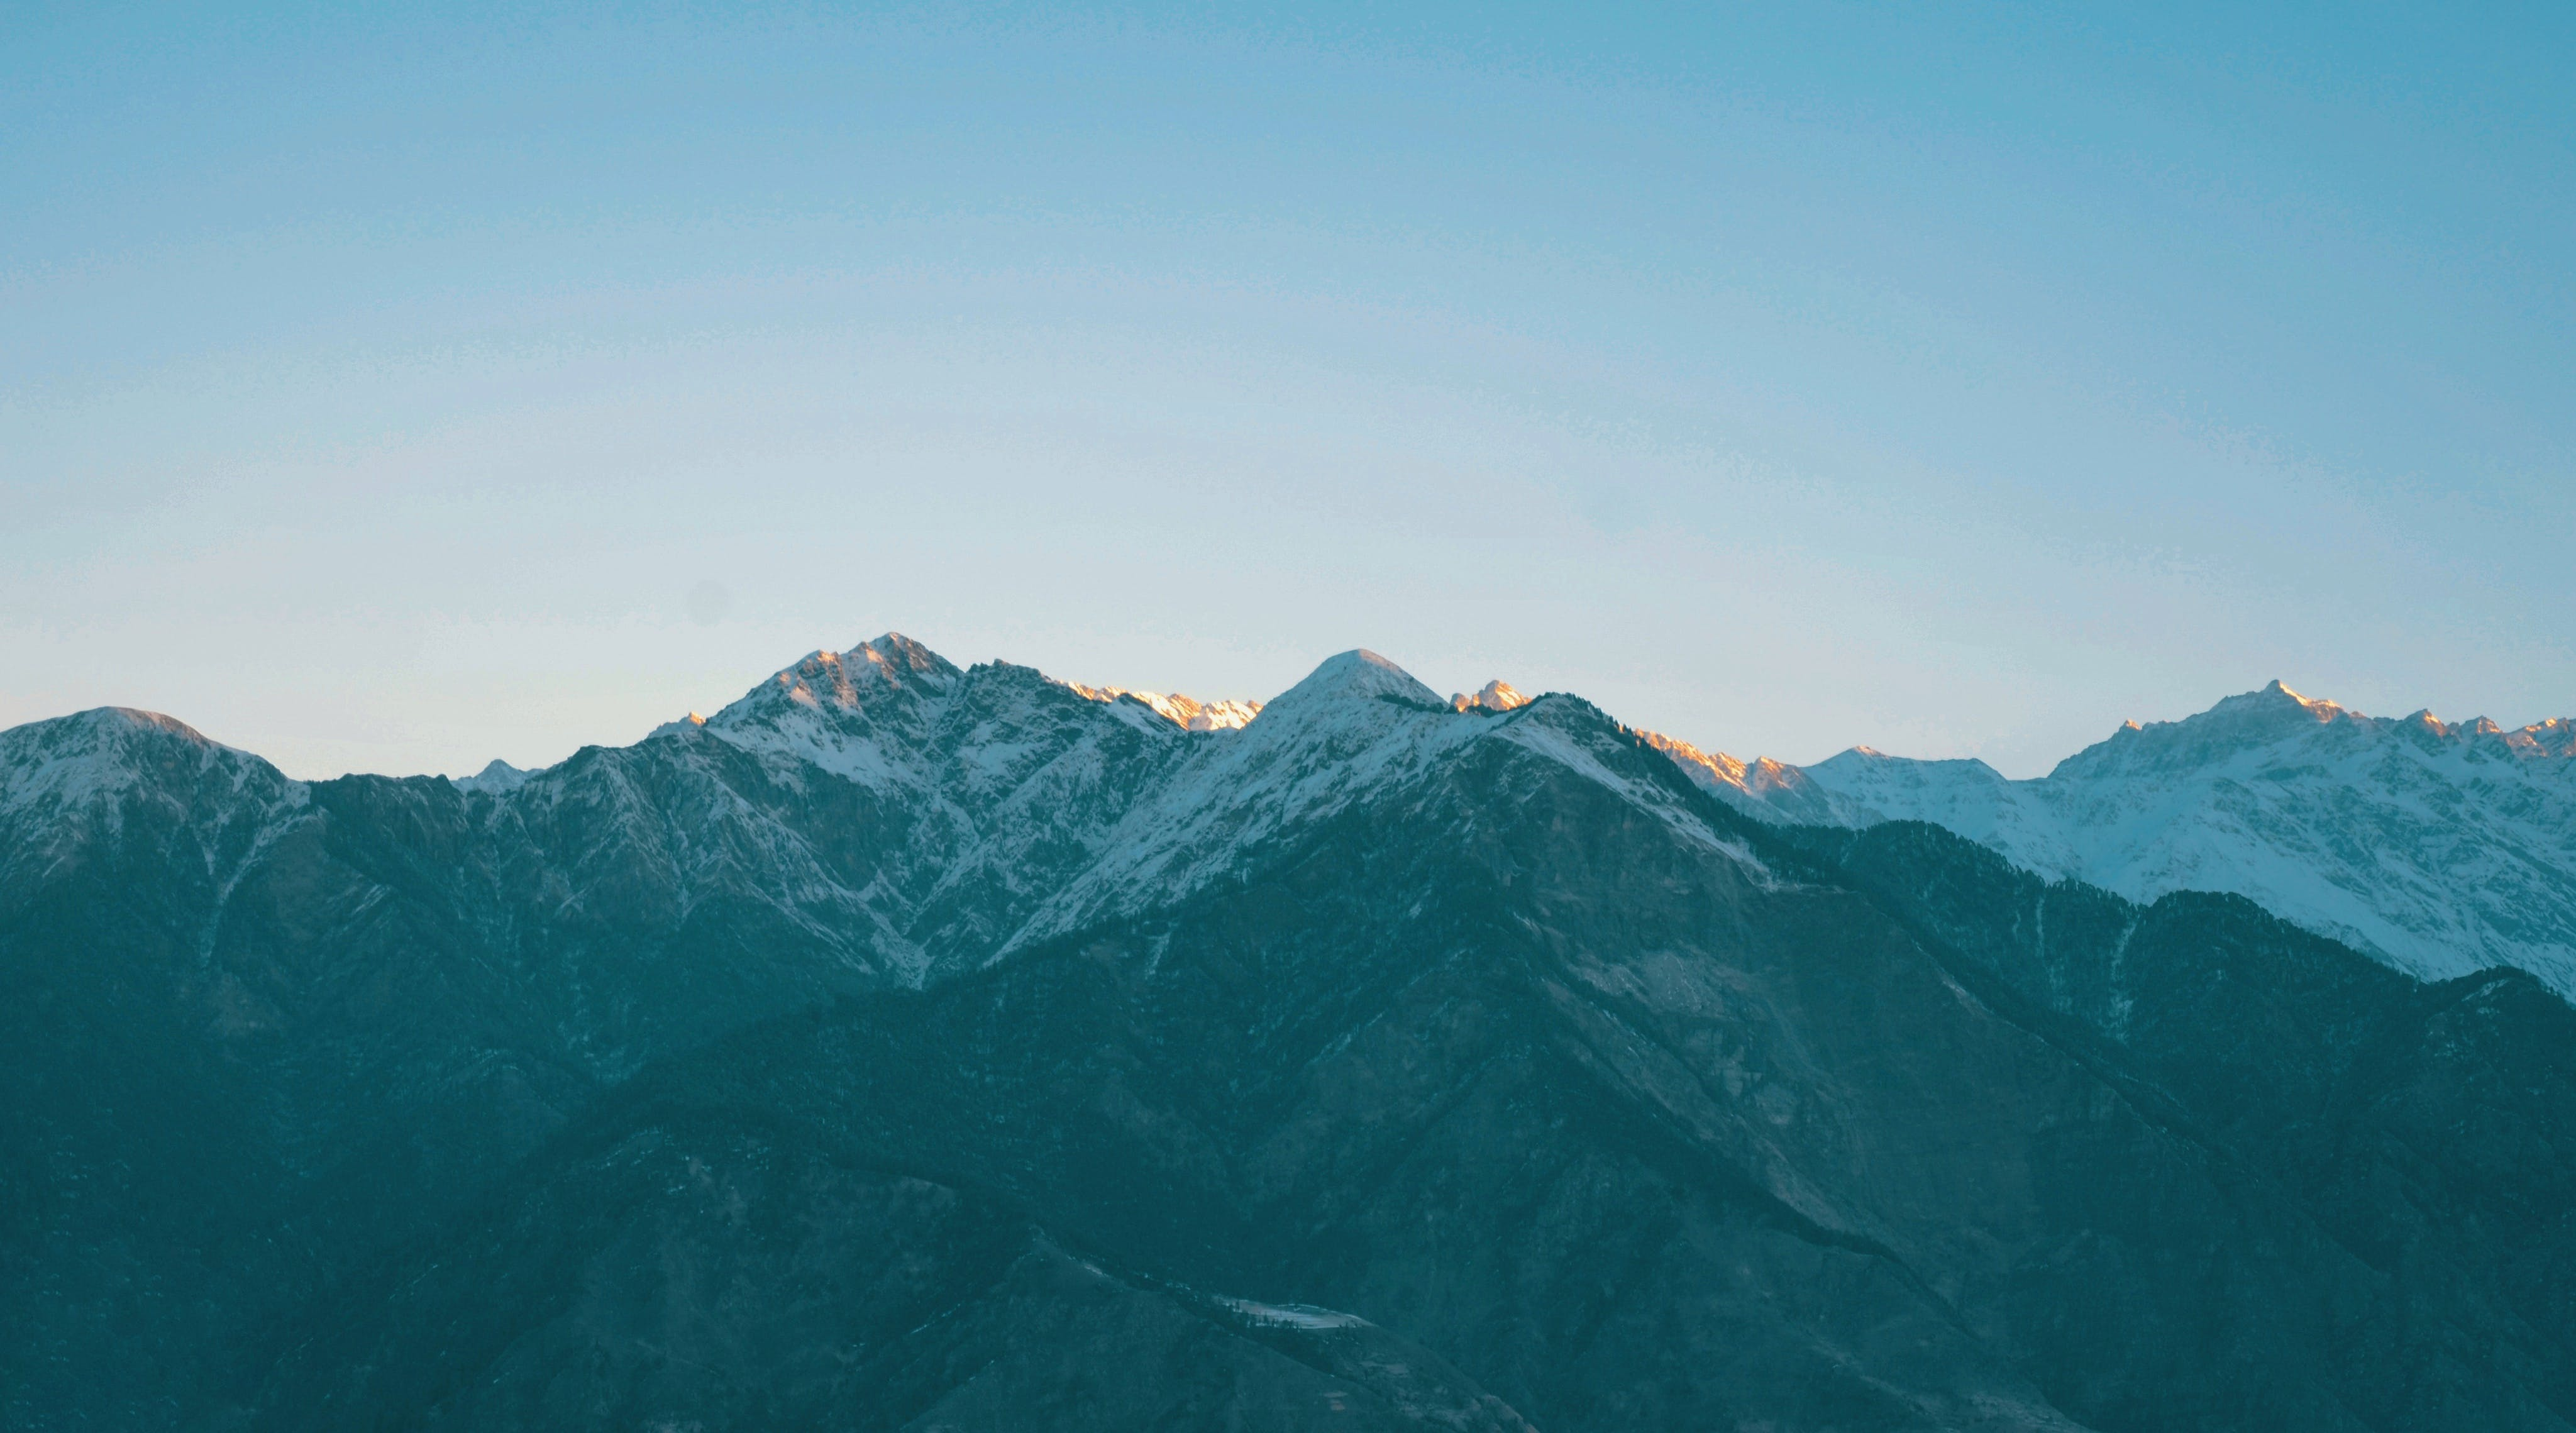 Landscape Photography Of Snow Capped Mountains